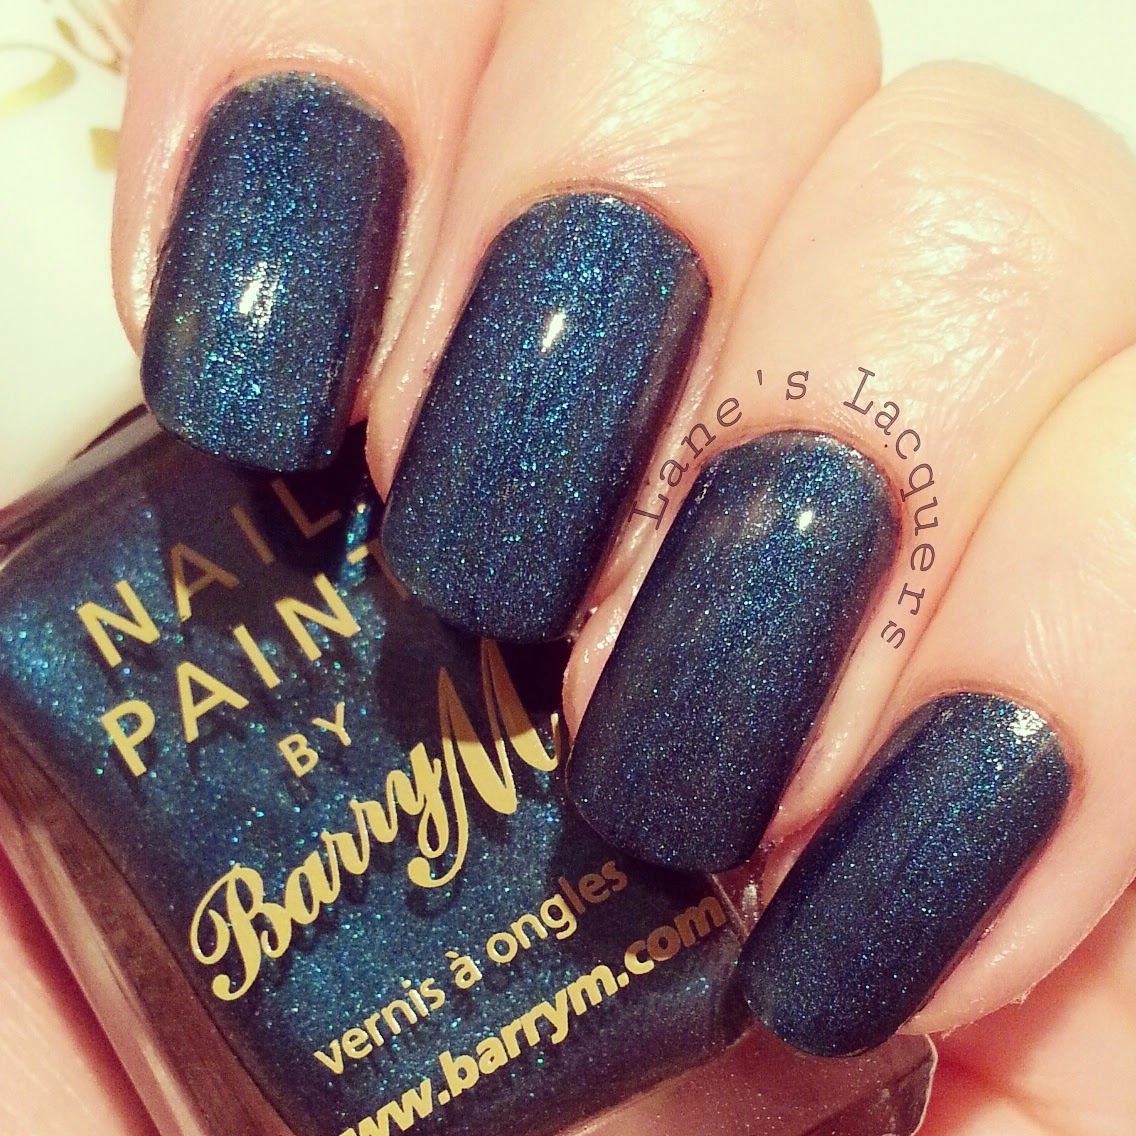 new-barry-m-silk-forest-swatch-manicure-with-topcoat